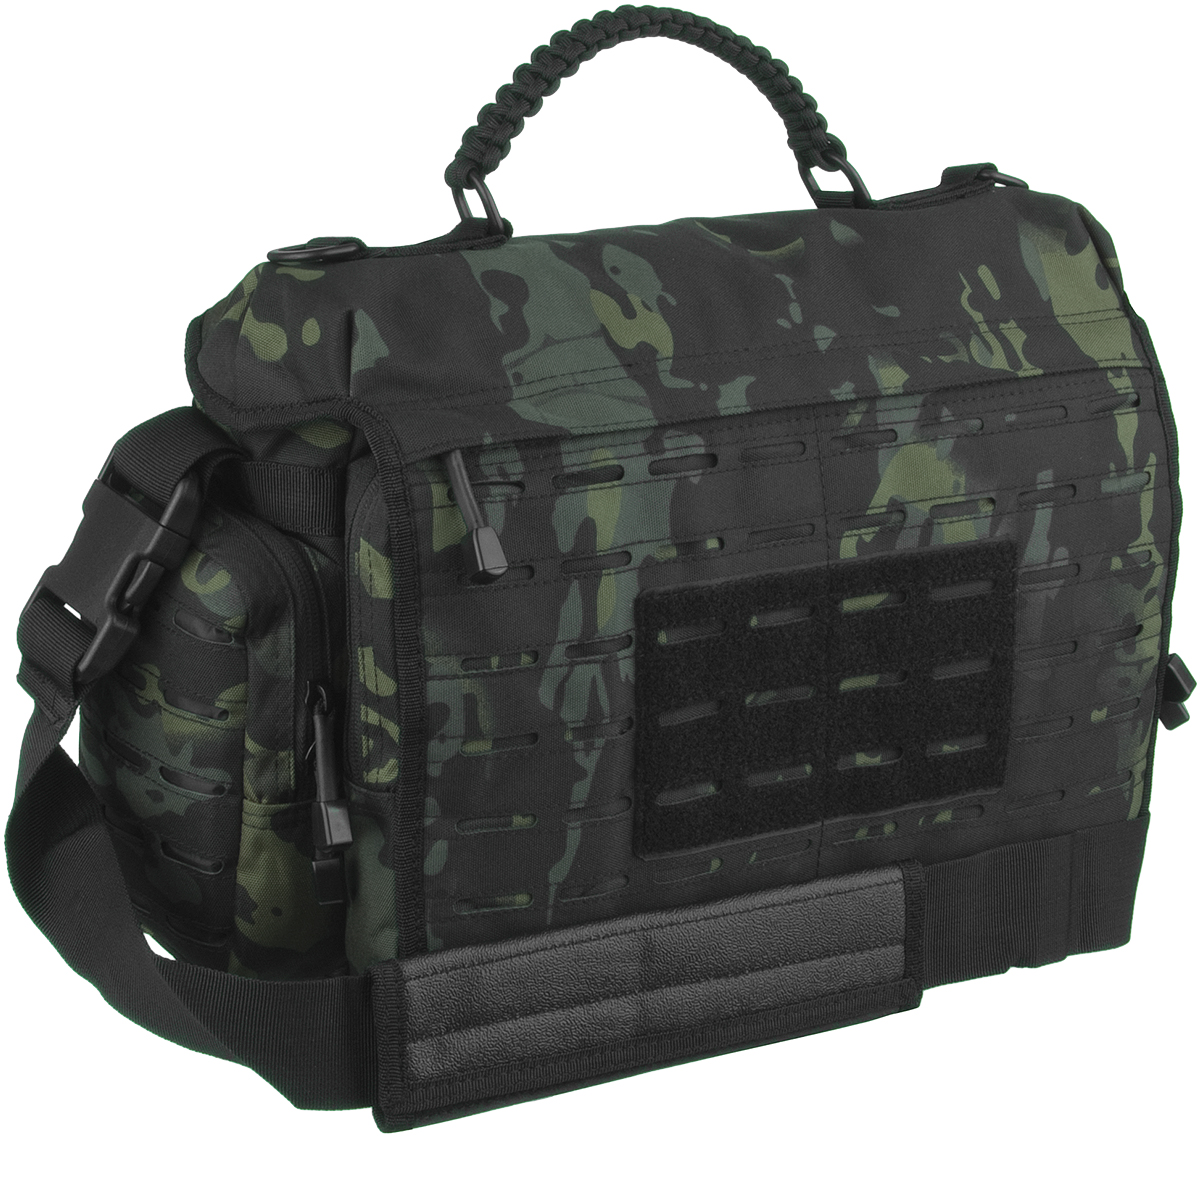 Mil tec tactical paracord bag large multitarn black for How to make a paracord bag